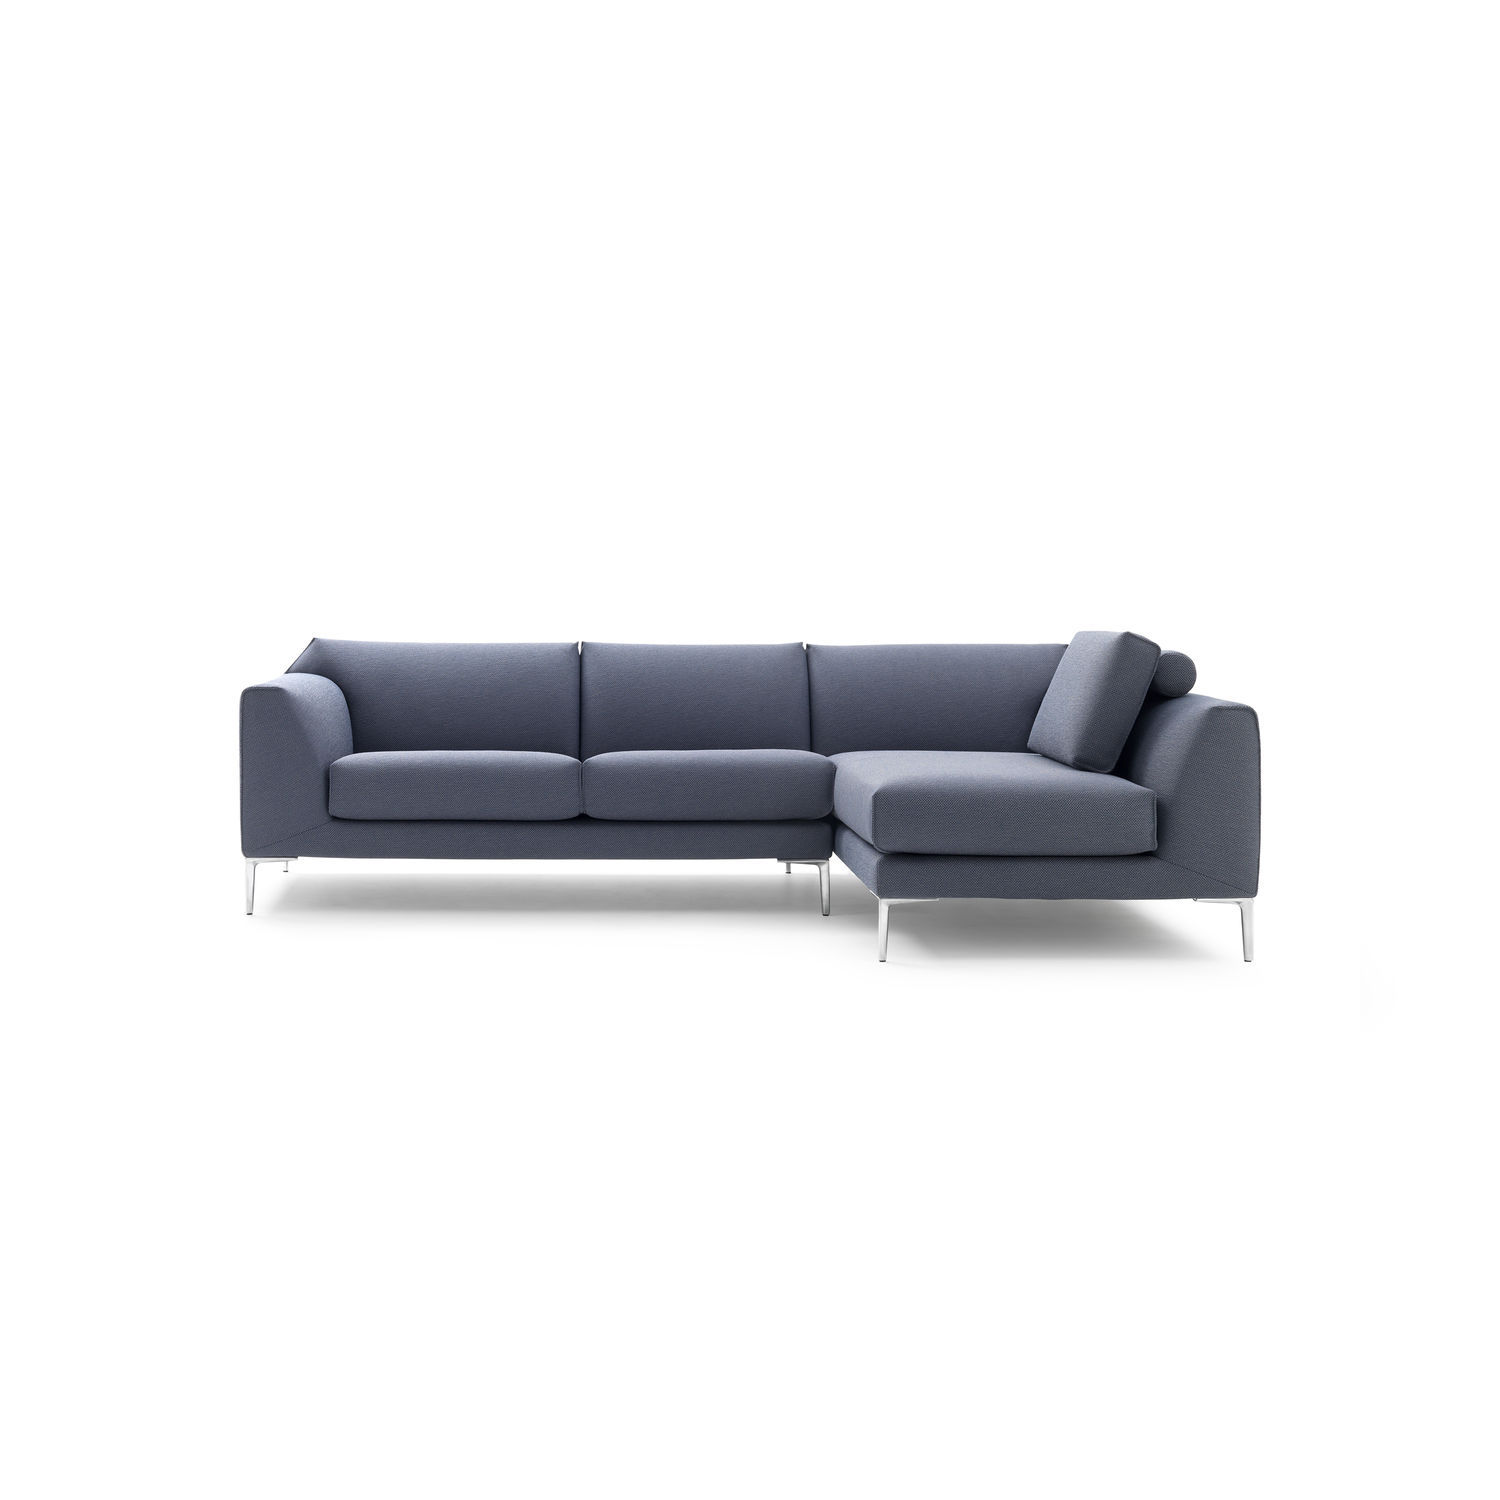 Modular Sofa Contemporary Fabric 3 Seater Lx675 By